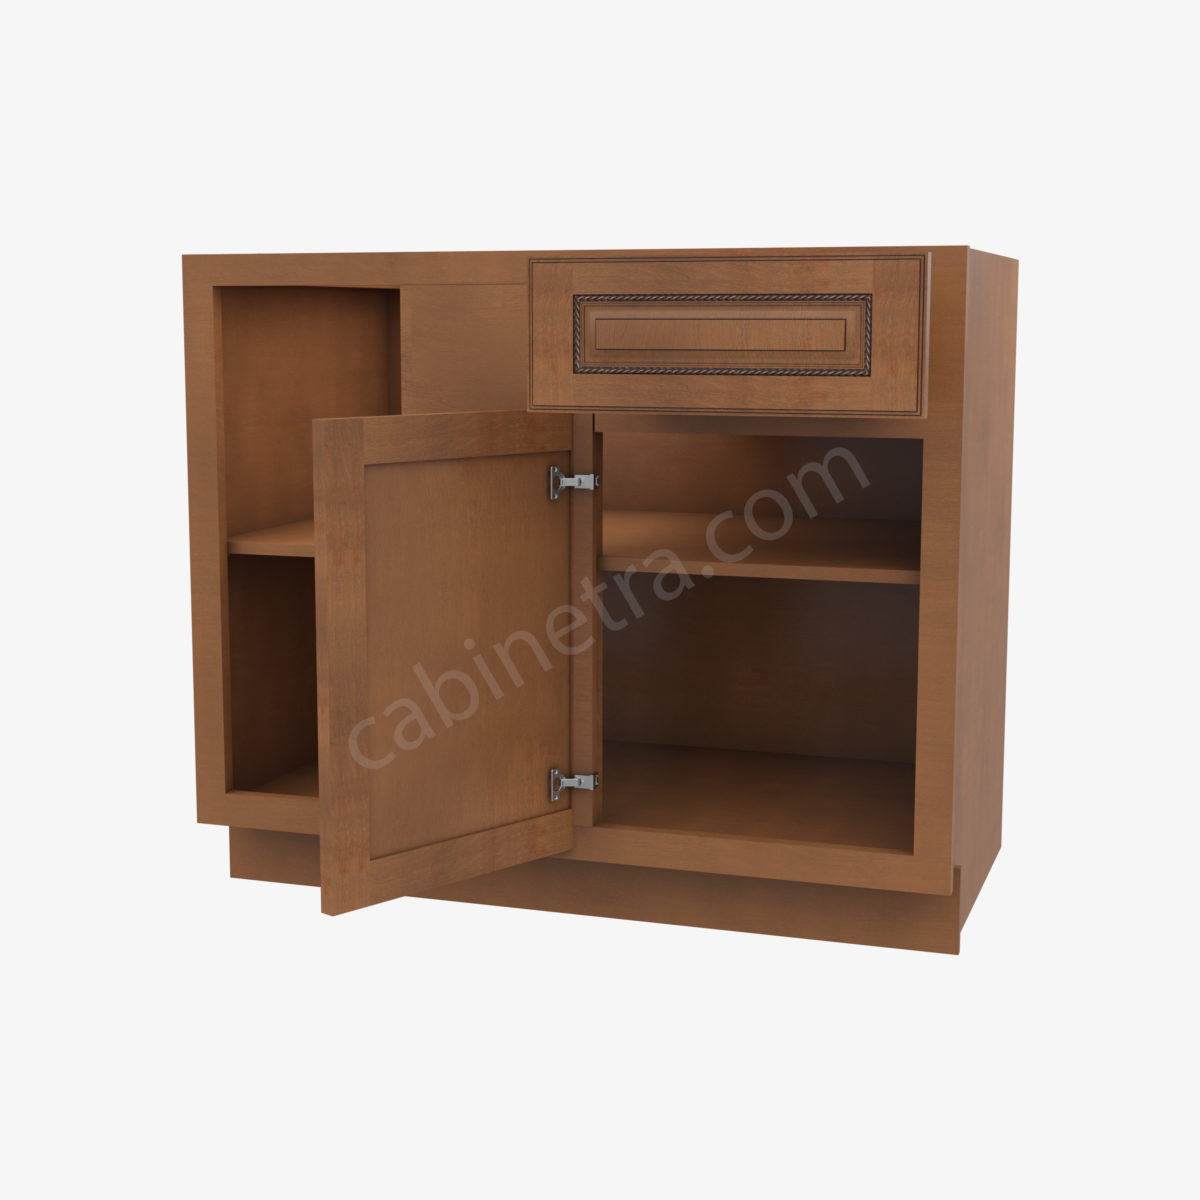 MR BBLC42 45 39W 5 Forevermark Sienna Rope Cabinetra scaled